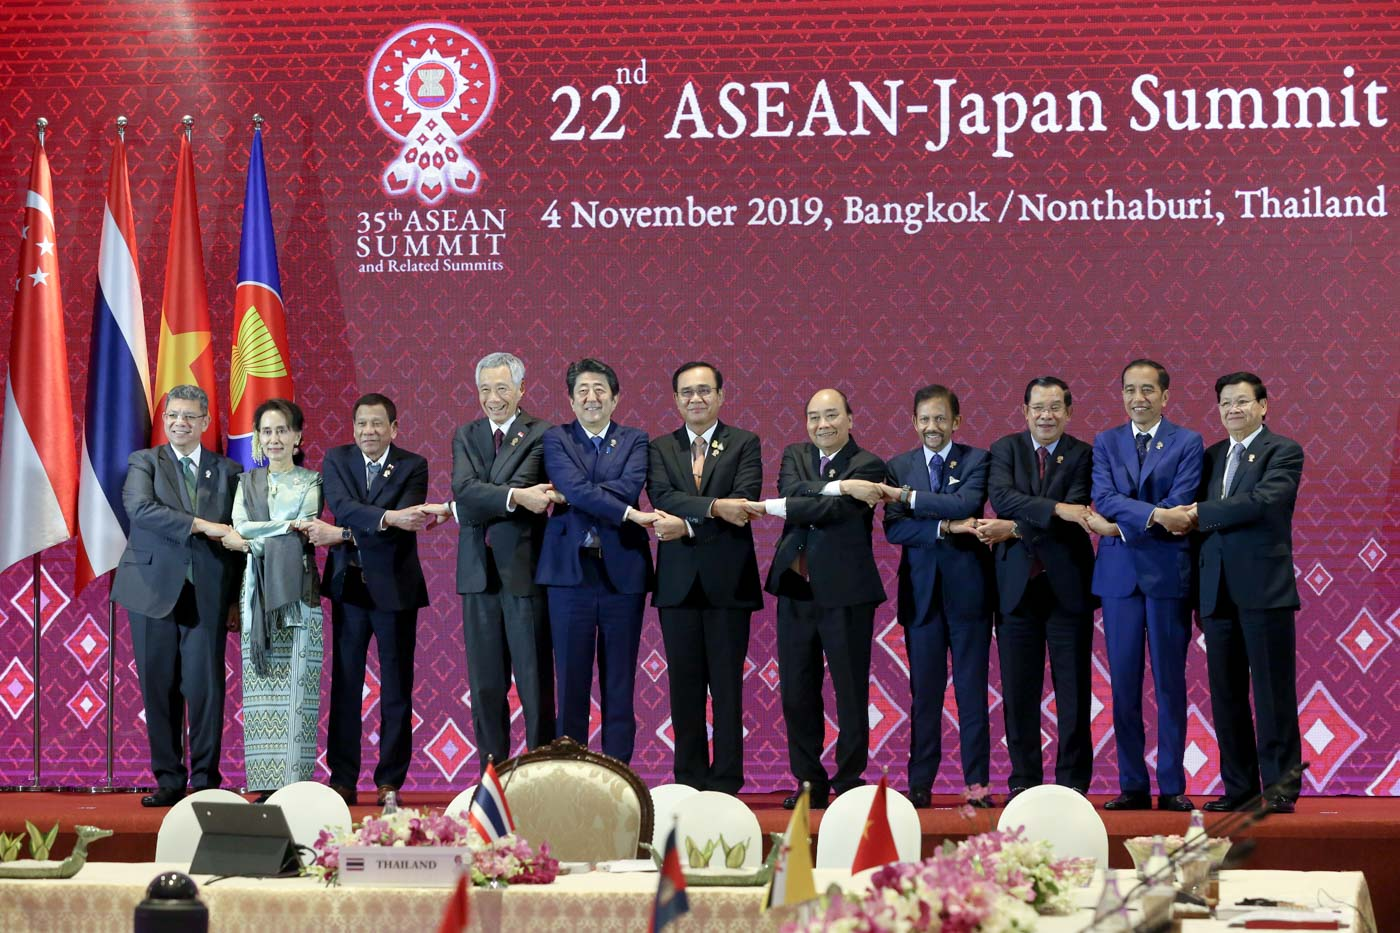 ASEAN AND JAPAN. President Rodrigo Duterte with other leaders from the Association of Southeast Asian Nations (ASEAN) and Prime Minister of Japan Shinzo Abe during the 22nd ASEAN-Japan Summit at the Impact Exhibition and Convention Center in Nonthaburi, Thailand on November 4, 2019. Photo from Malacañang